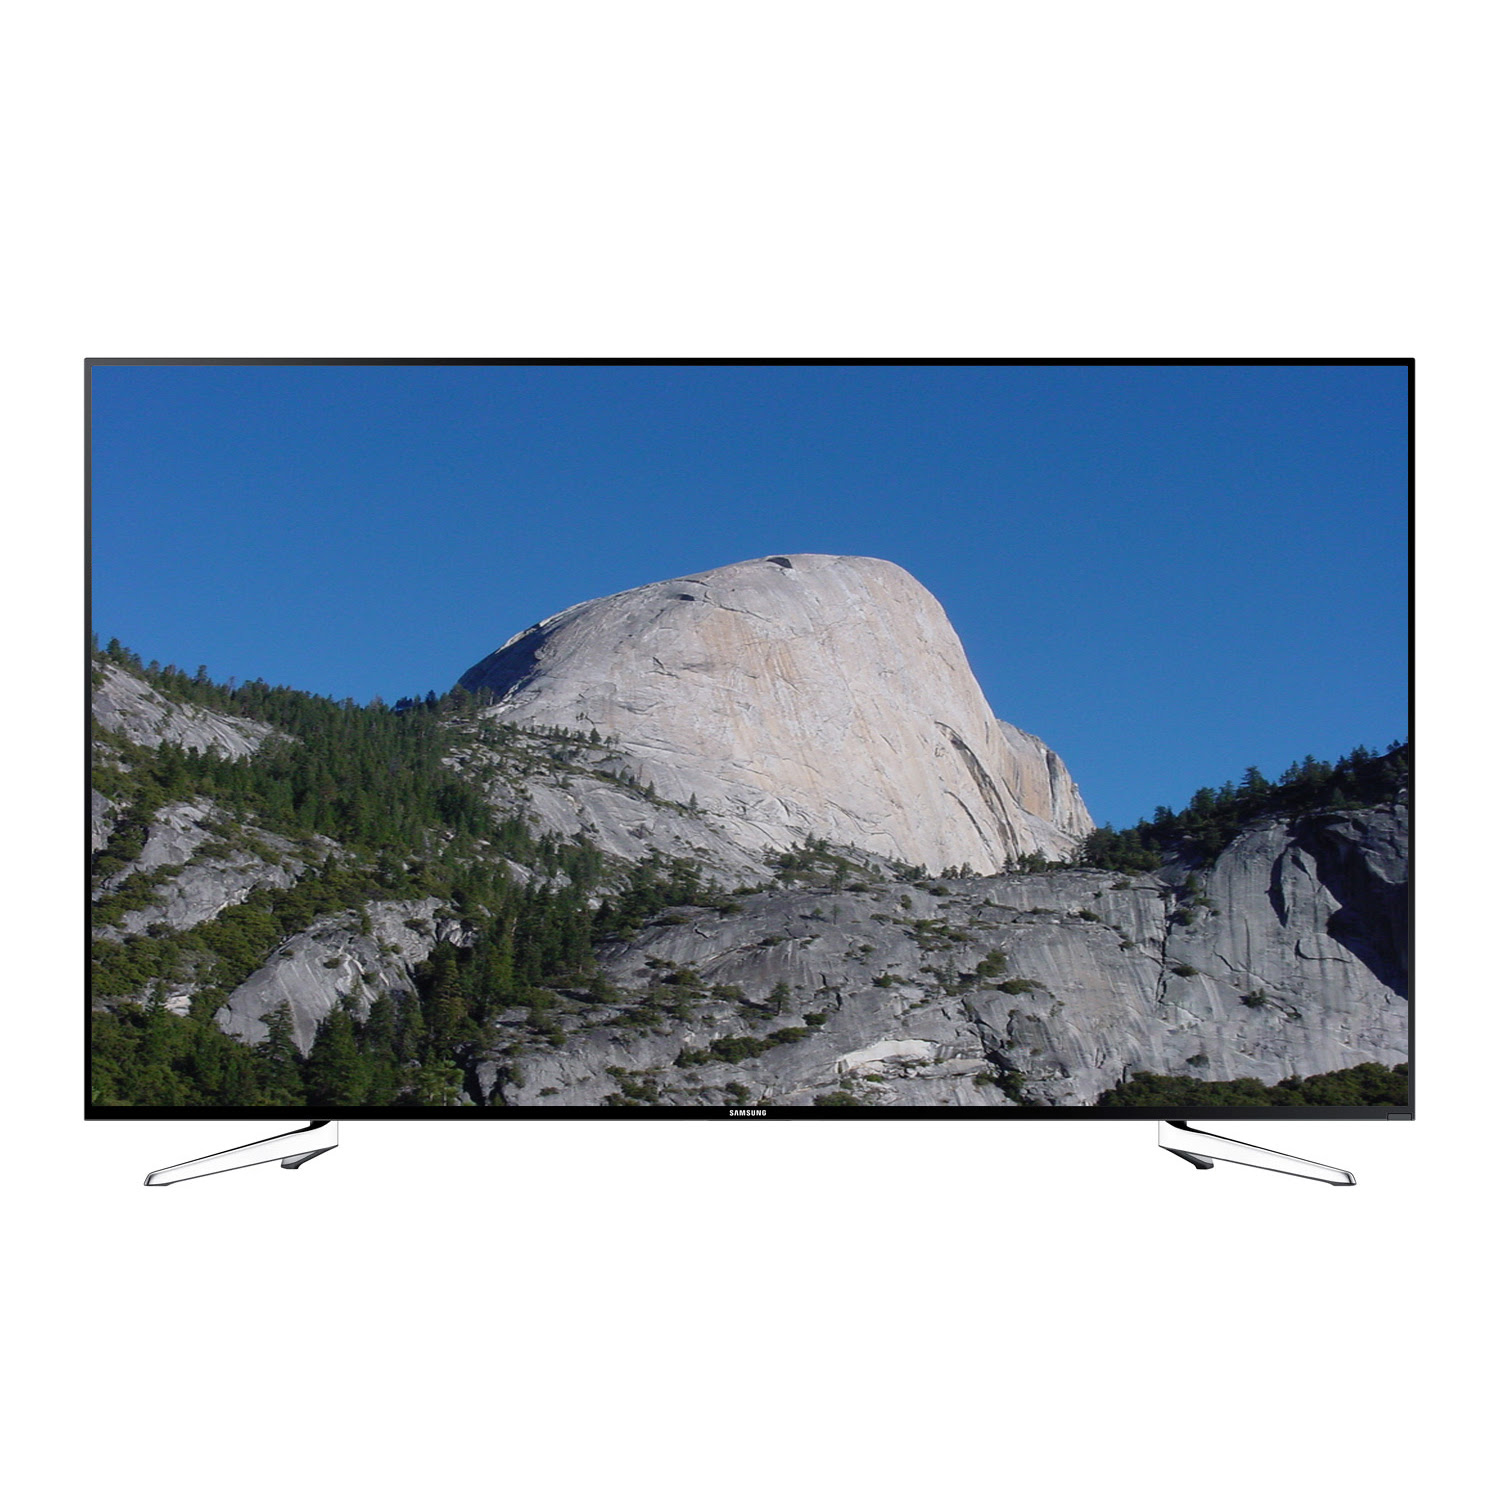 Samsung Refurbished 75 Class 1080p LED Smart Hdtv - UN75J630DAF